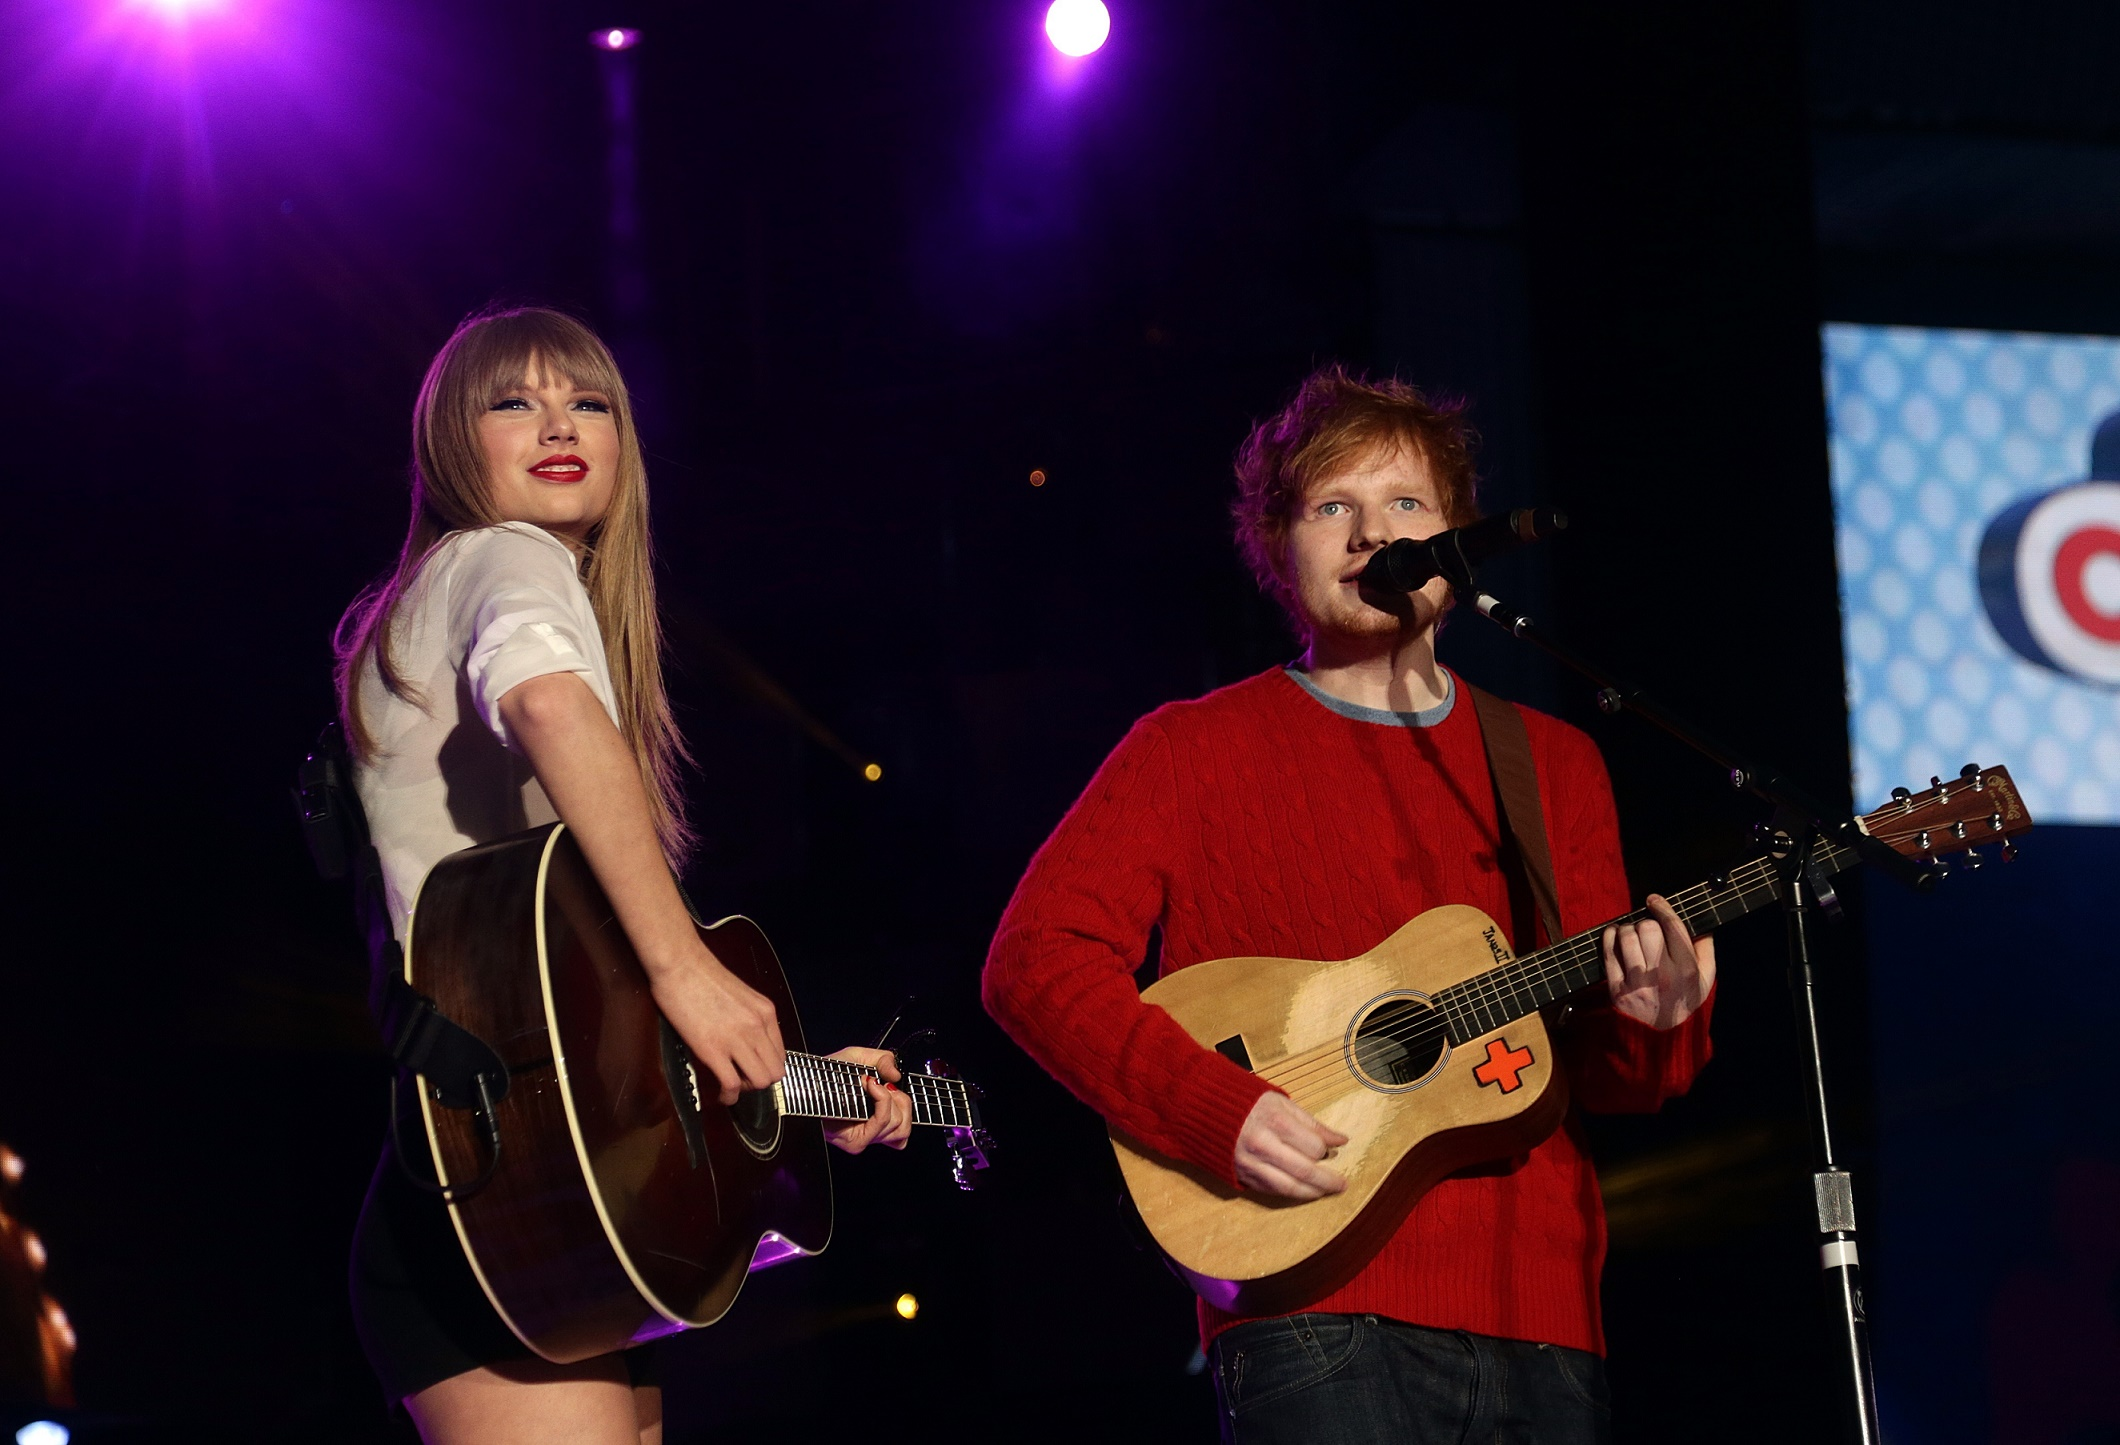 Here's What Ed Sheeran Thinks of Taylor Swift's Boyfriend Joe Alwyn